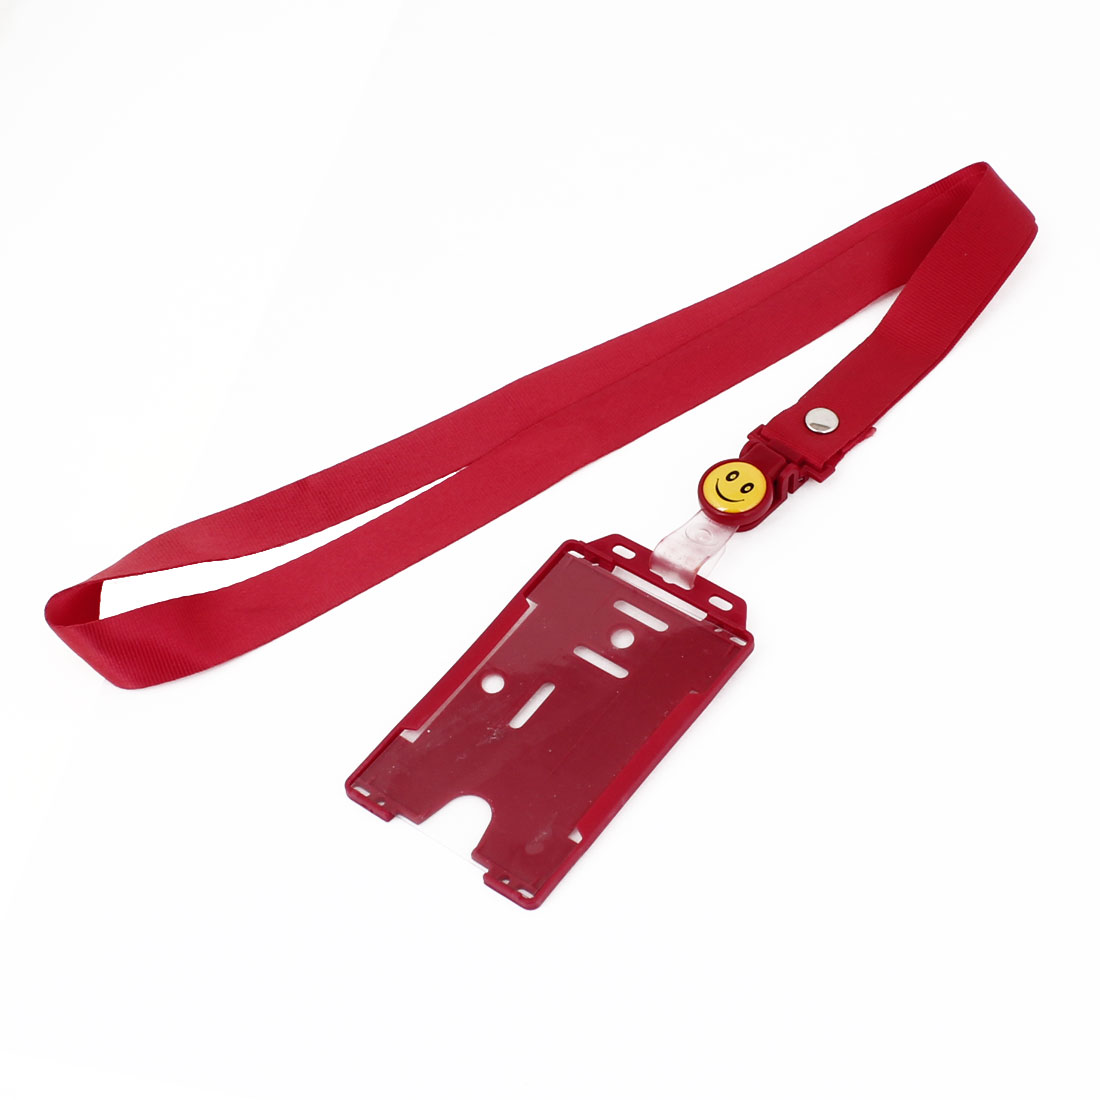 Plastic Name Business Credit ID Card Vertical Holder Red w Neck Strap